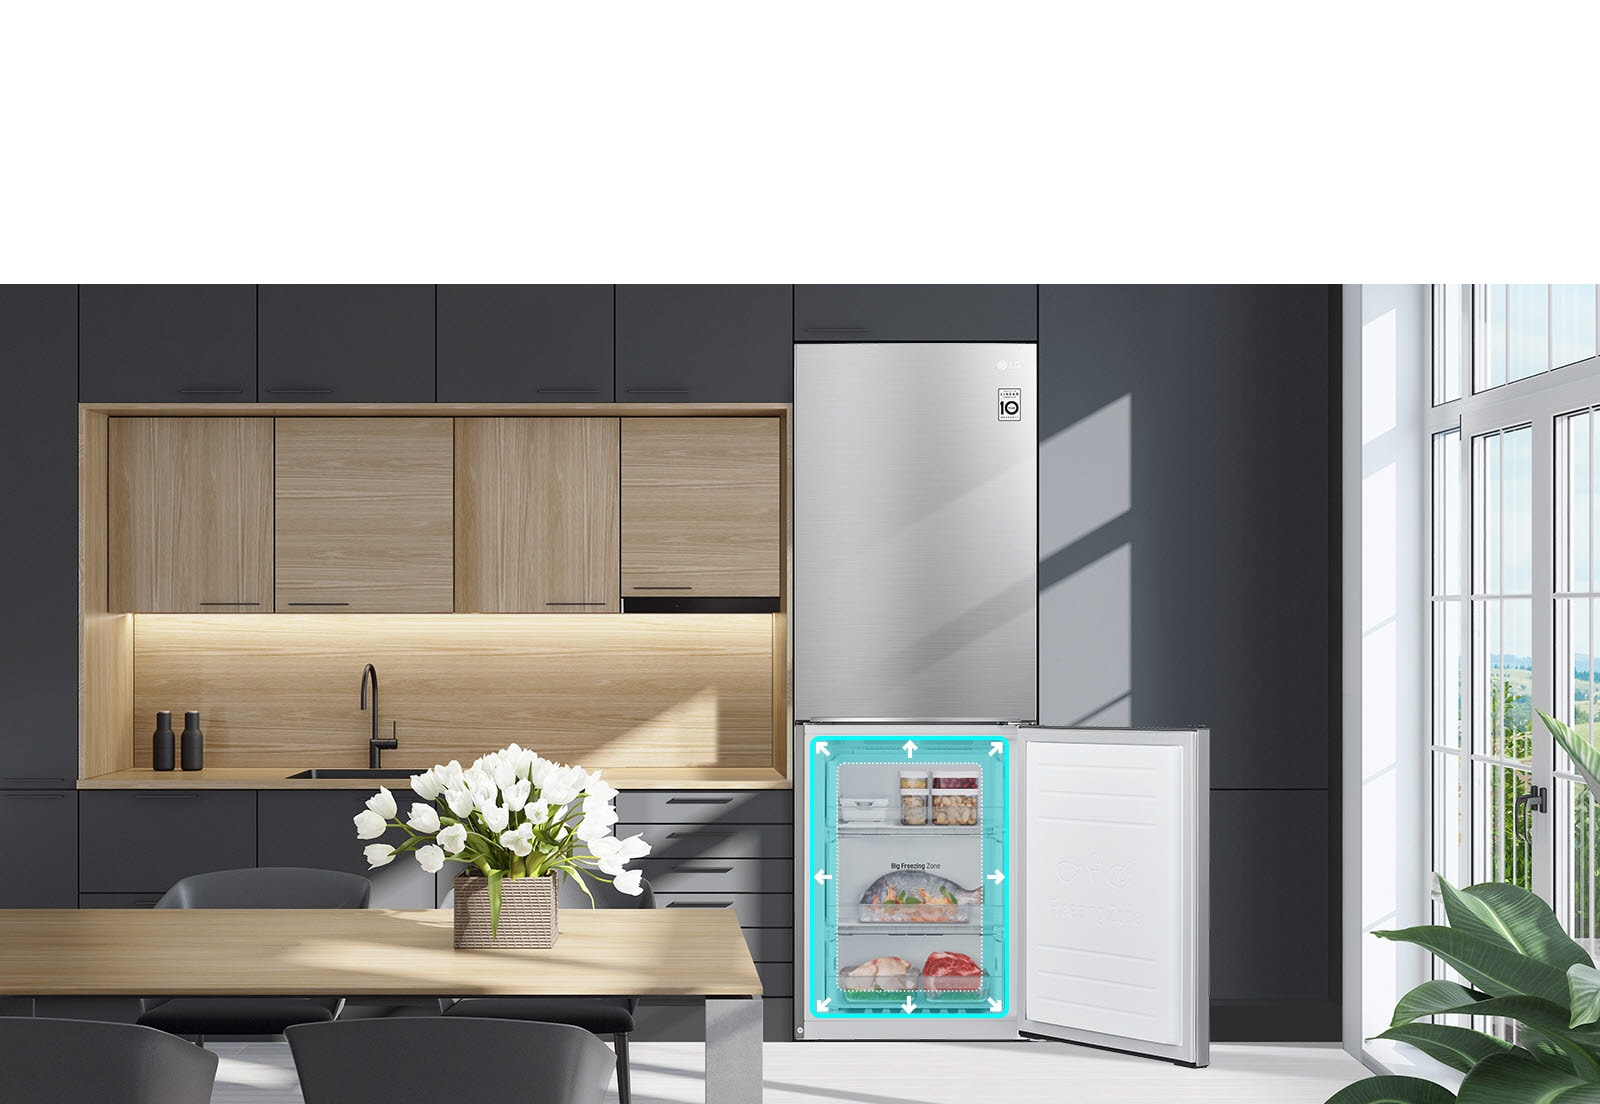 A refrigerator is shown blending with the shelving in the kitchen. The bottom half of the refrigerator is open and filled with produce. A neon square with arrows is shown around the edge of the refrigerator space to show there is more space inside.